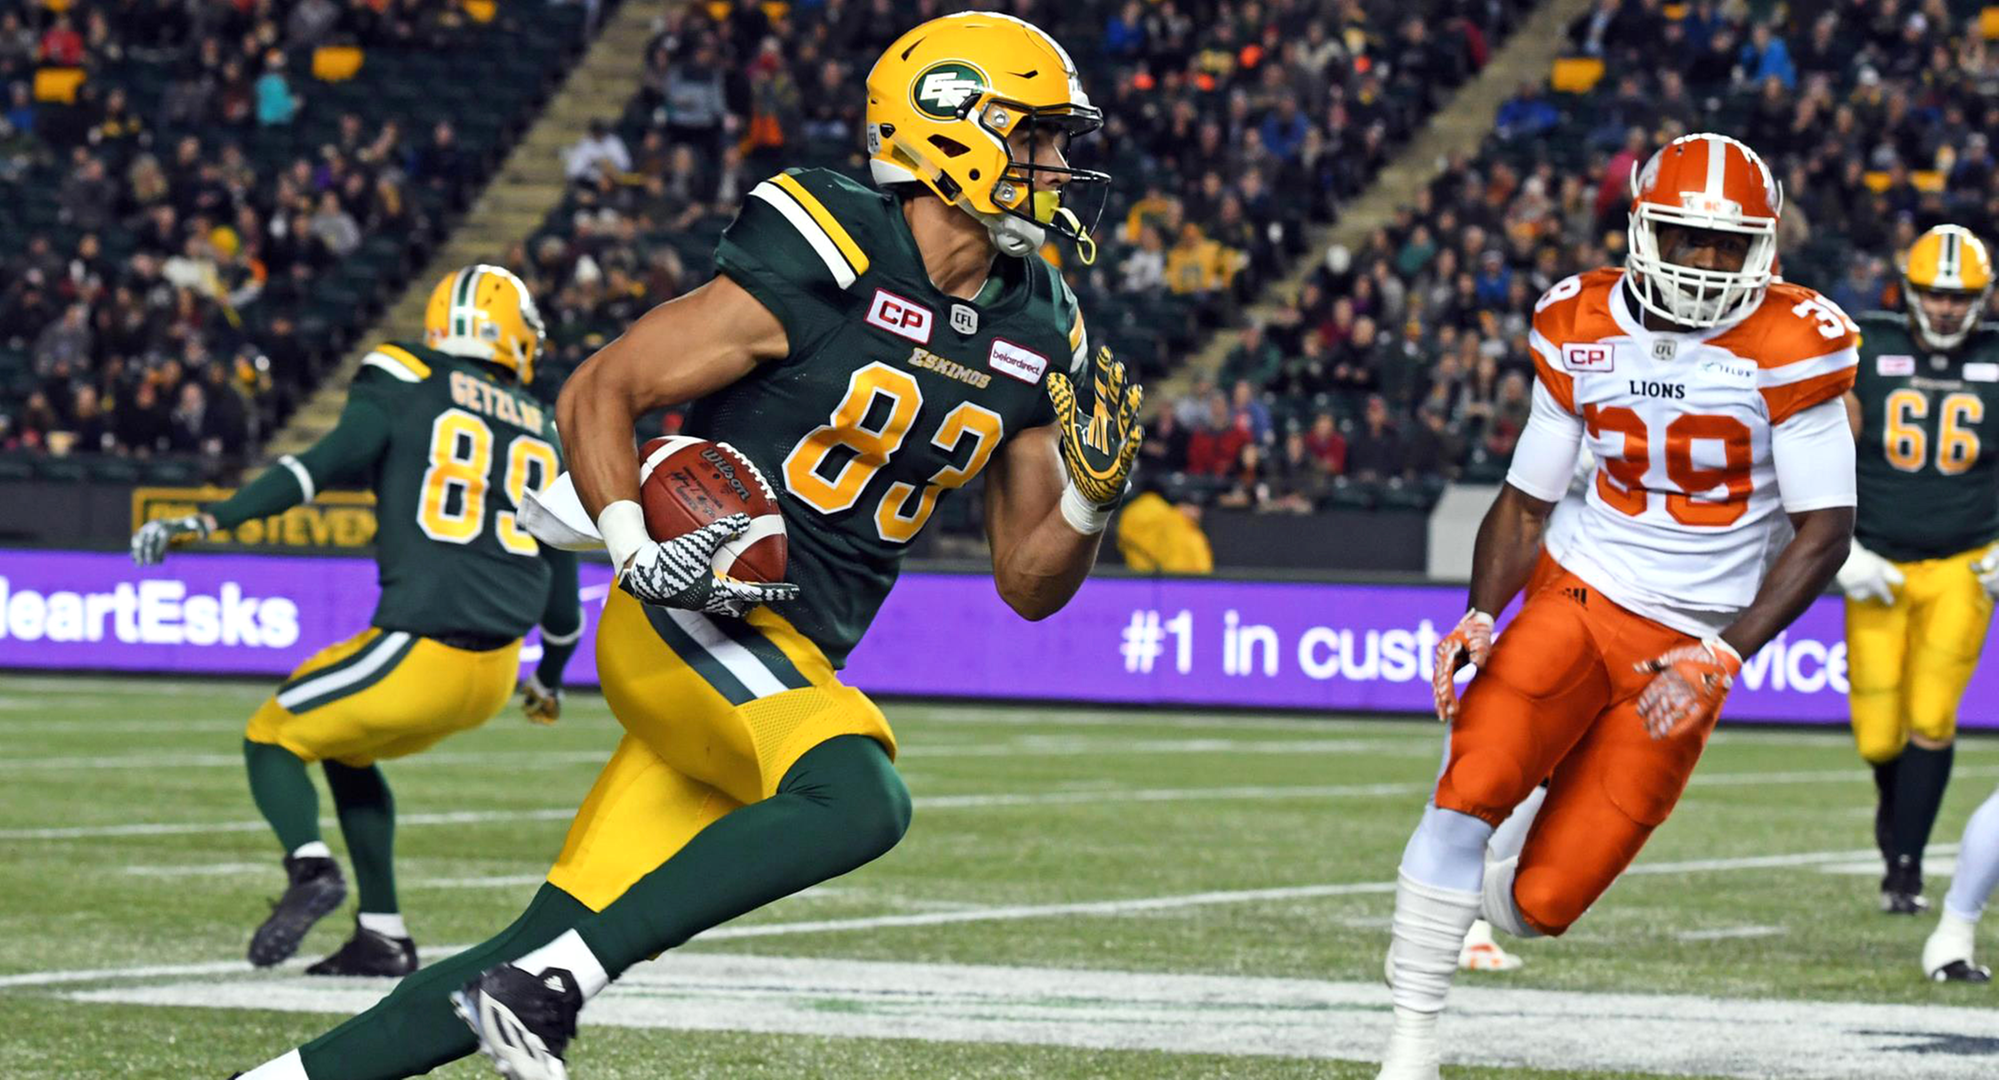 Zylstra Makes His Mark In CFL